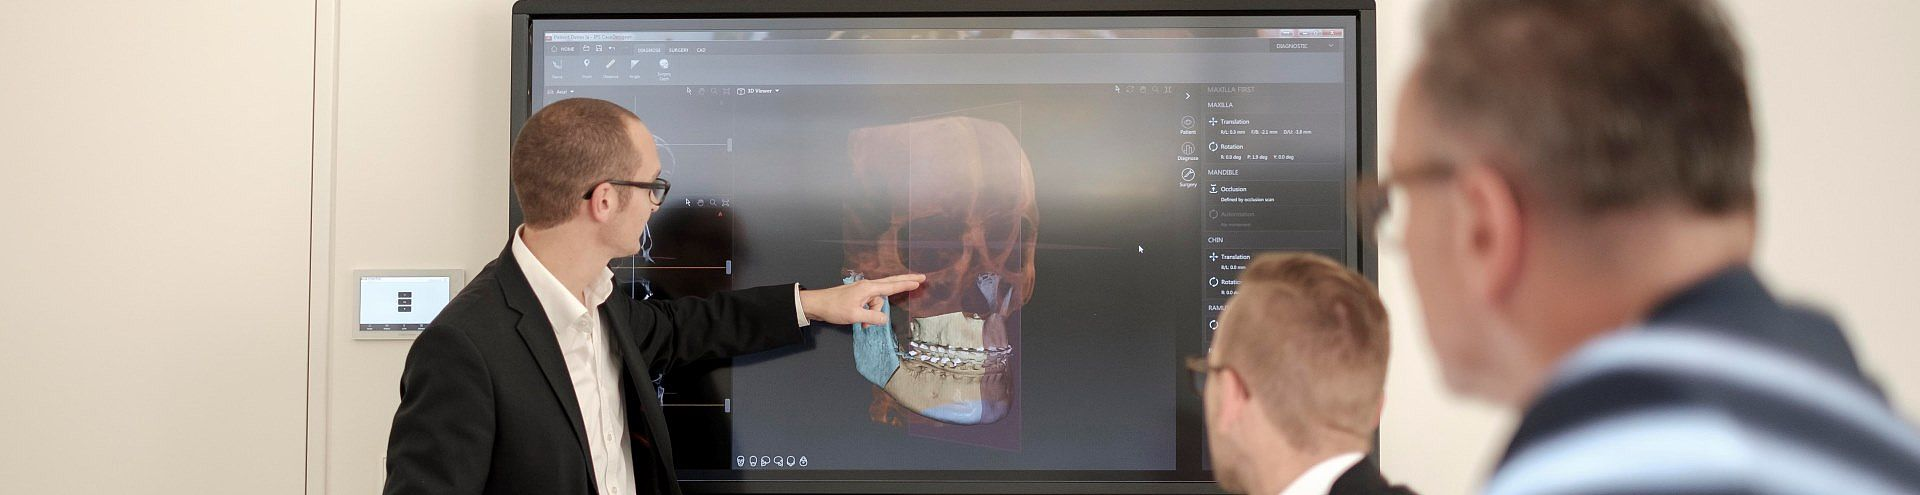 3D Virtual Planning and Minimally Invasive Orthognathic Surgery Training Concept